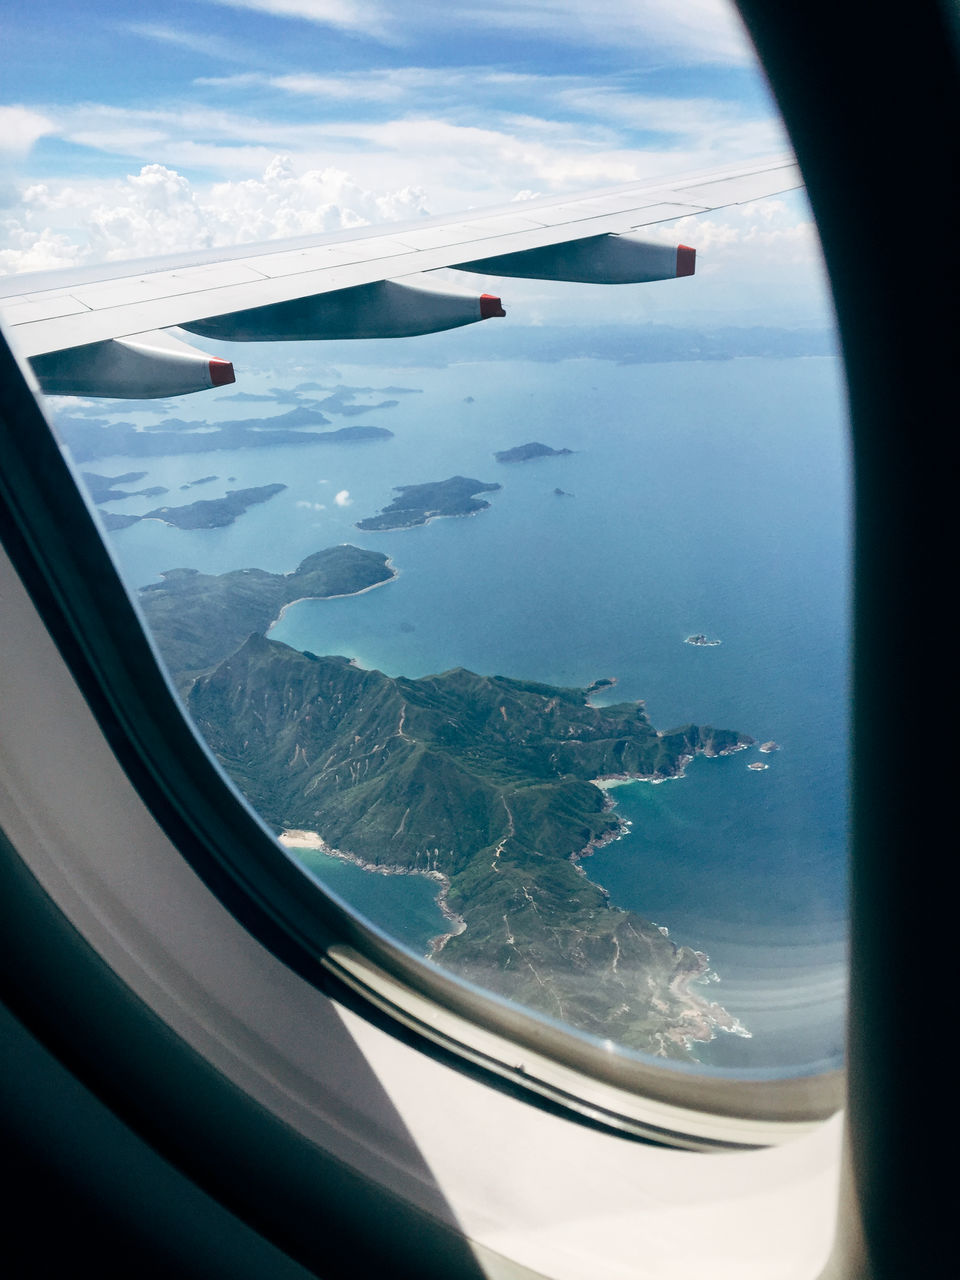 airplane, airplane wing, aerial view, journey, transportation, flying, air vehicle, travel, landscape, window, mid-air, aircraft wing, mode of transport, sea, sky, nature, cloud - sky, no people, day, scenics, mountain, beauty in nature, vehicle part, indoors, close-up